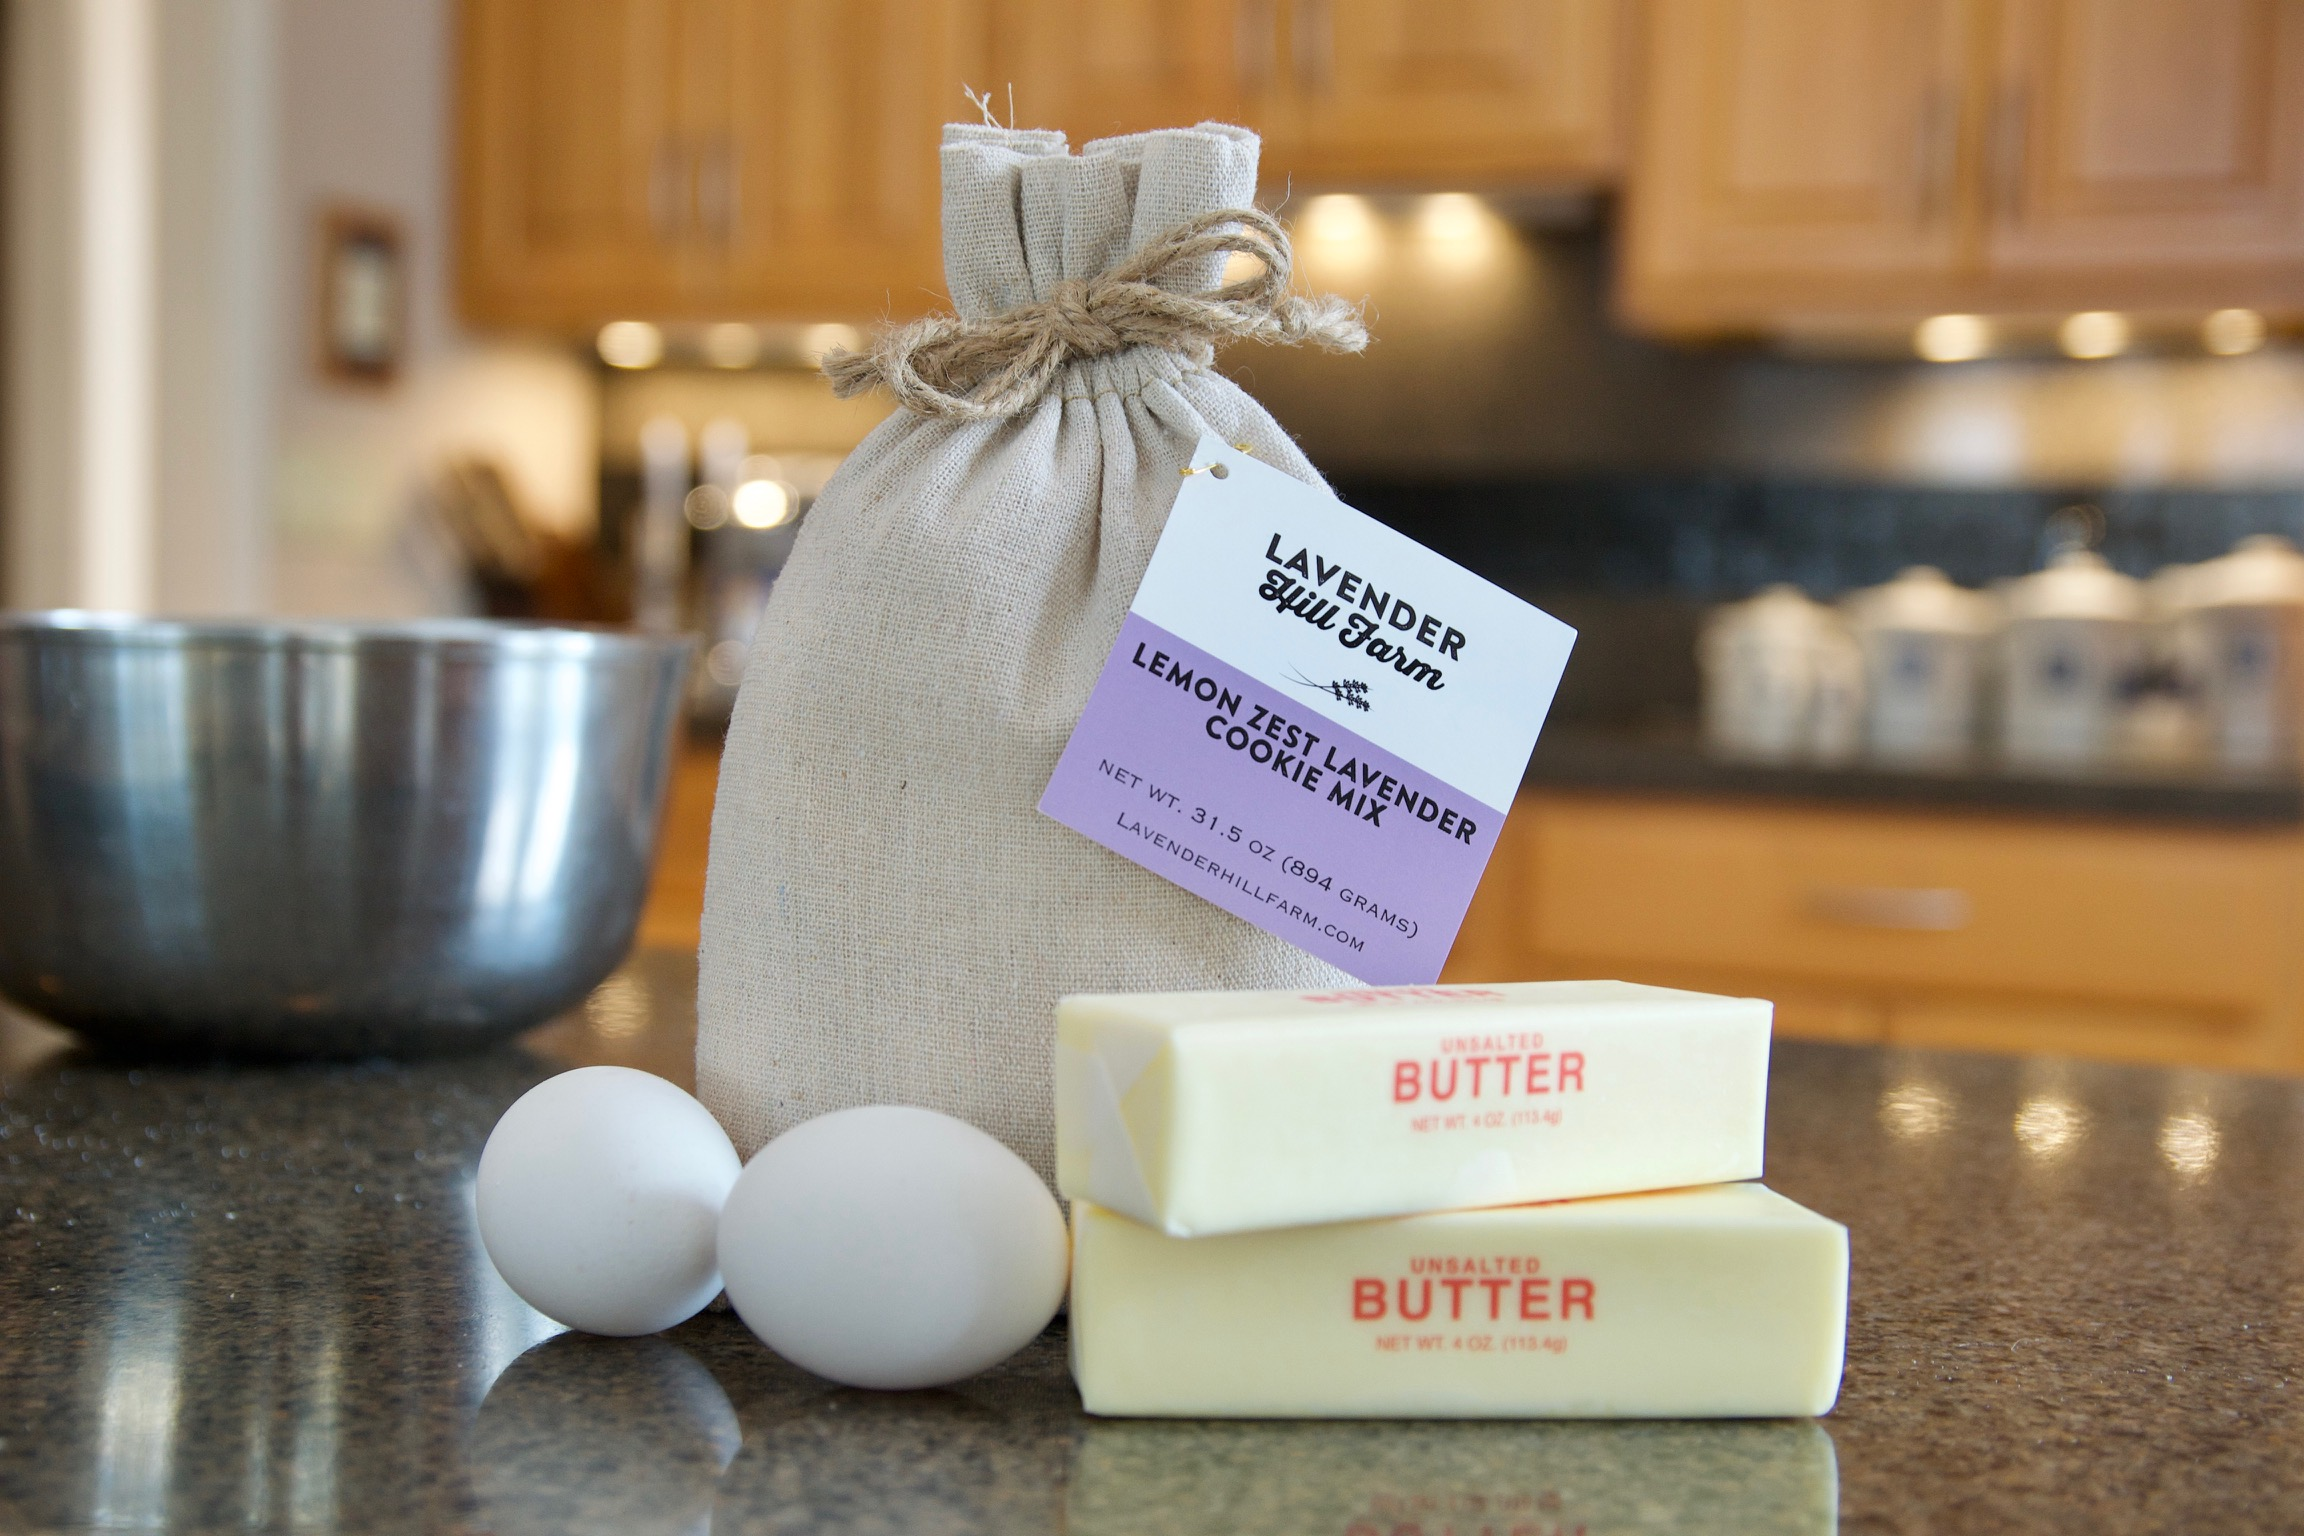 The BEST Lavender Cookie Mix